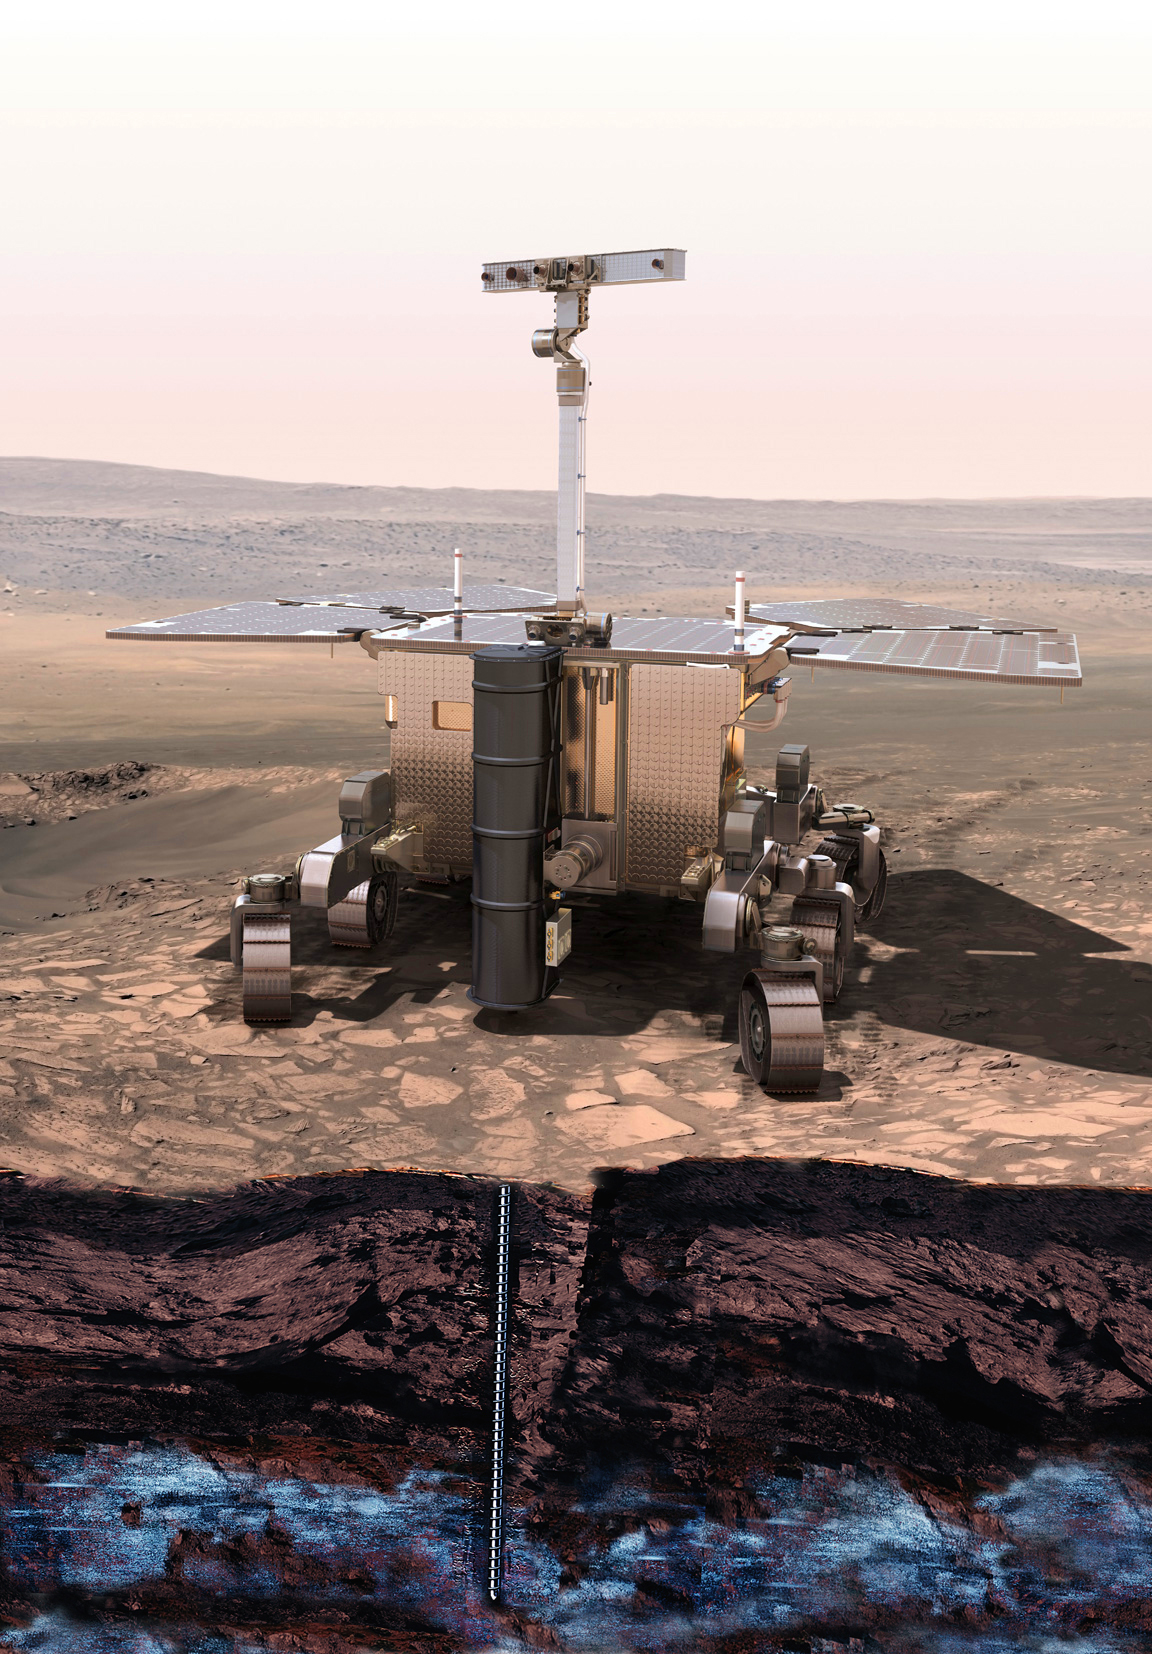 Rover Com Careers >> Space in Images - 2013 - 03 - ExoMars rover